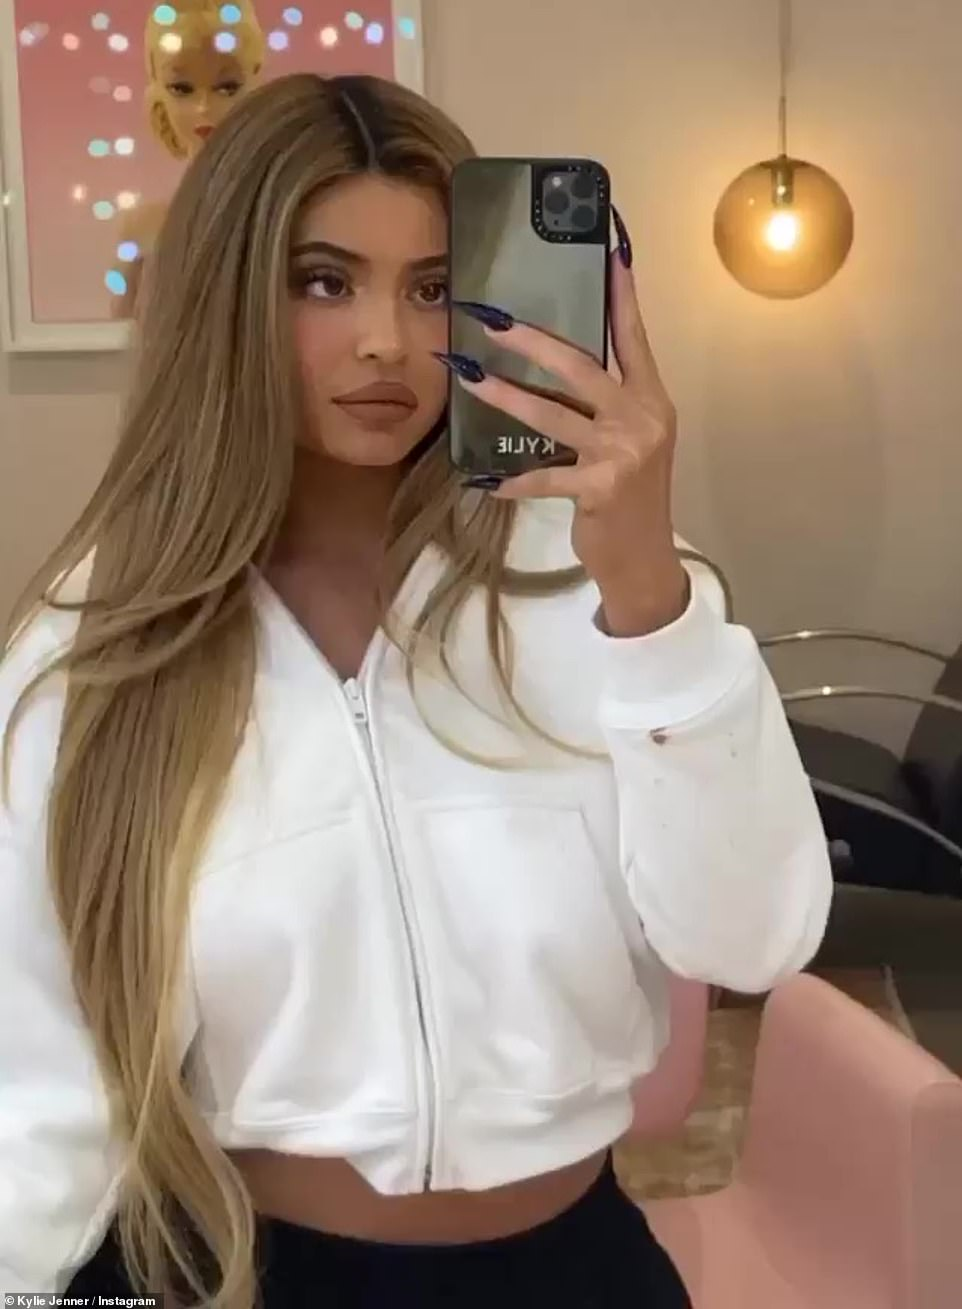 Kylie Jenner, one of the most popular influencers on the planet, is thought to be able to earn as much as $1.2 million (£912,000) for a single post